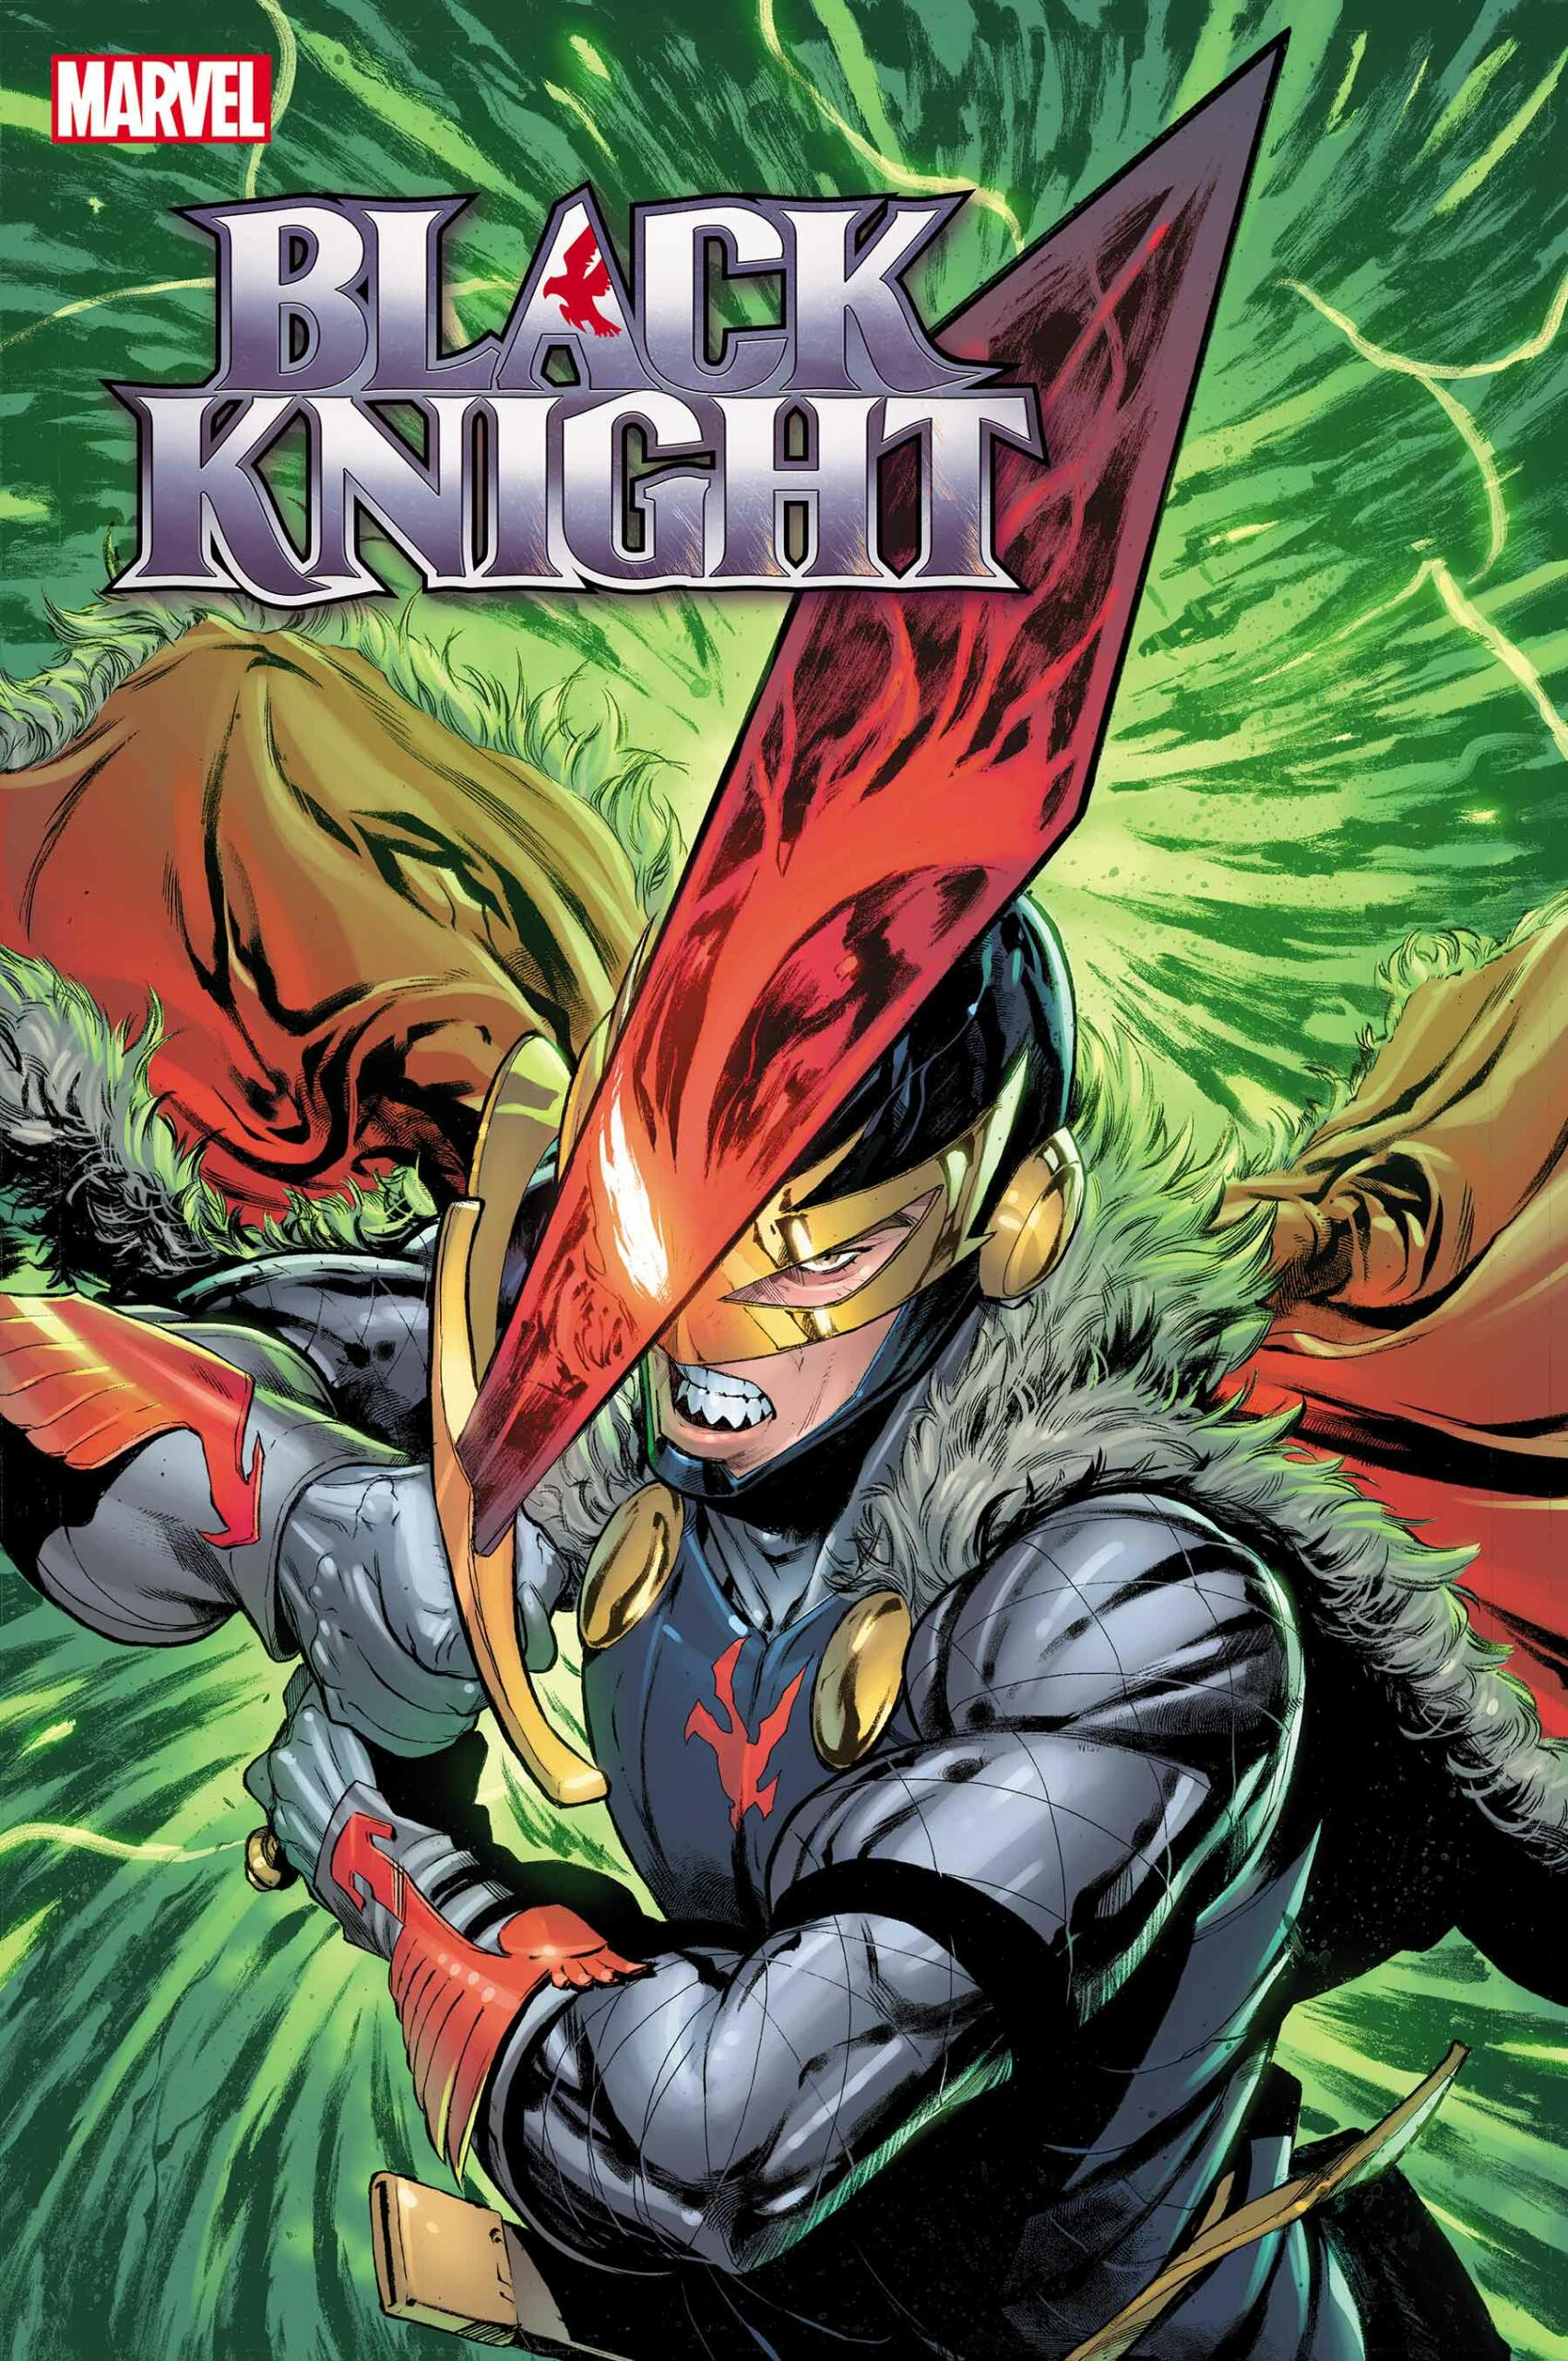 The Adventures Continue for Marvel's Black Knight